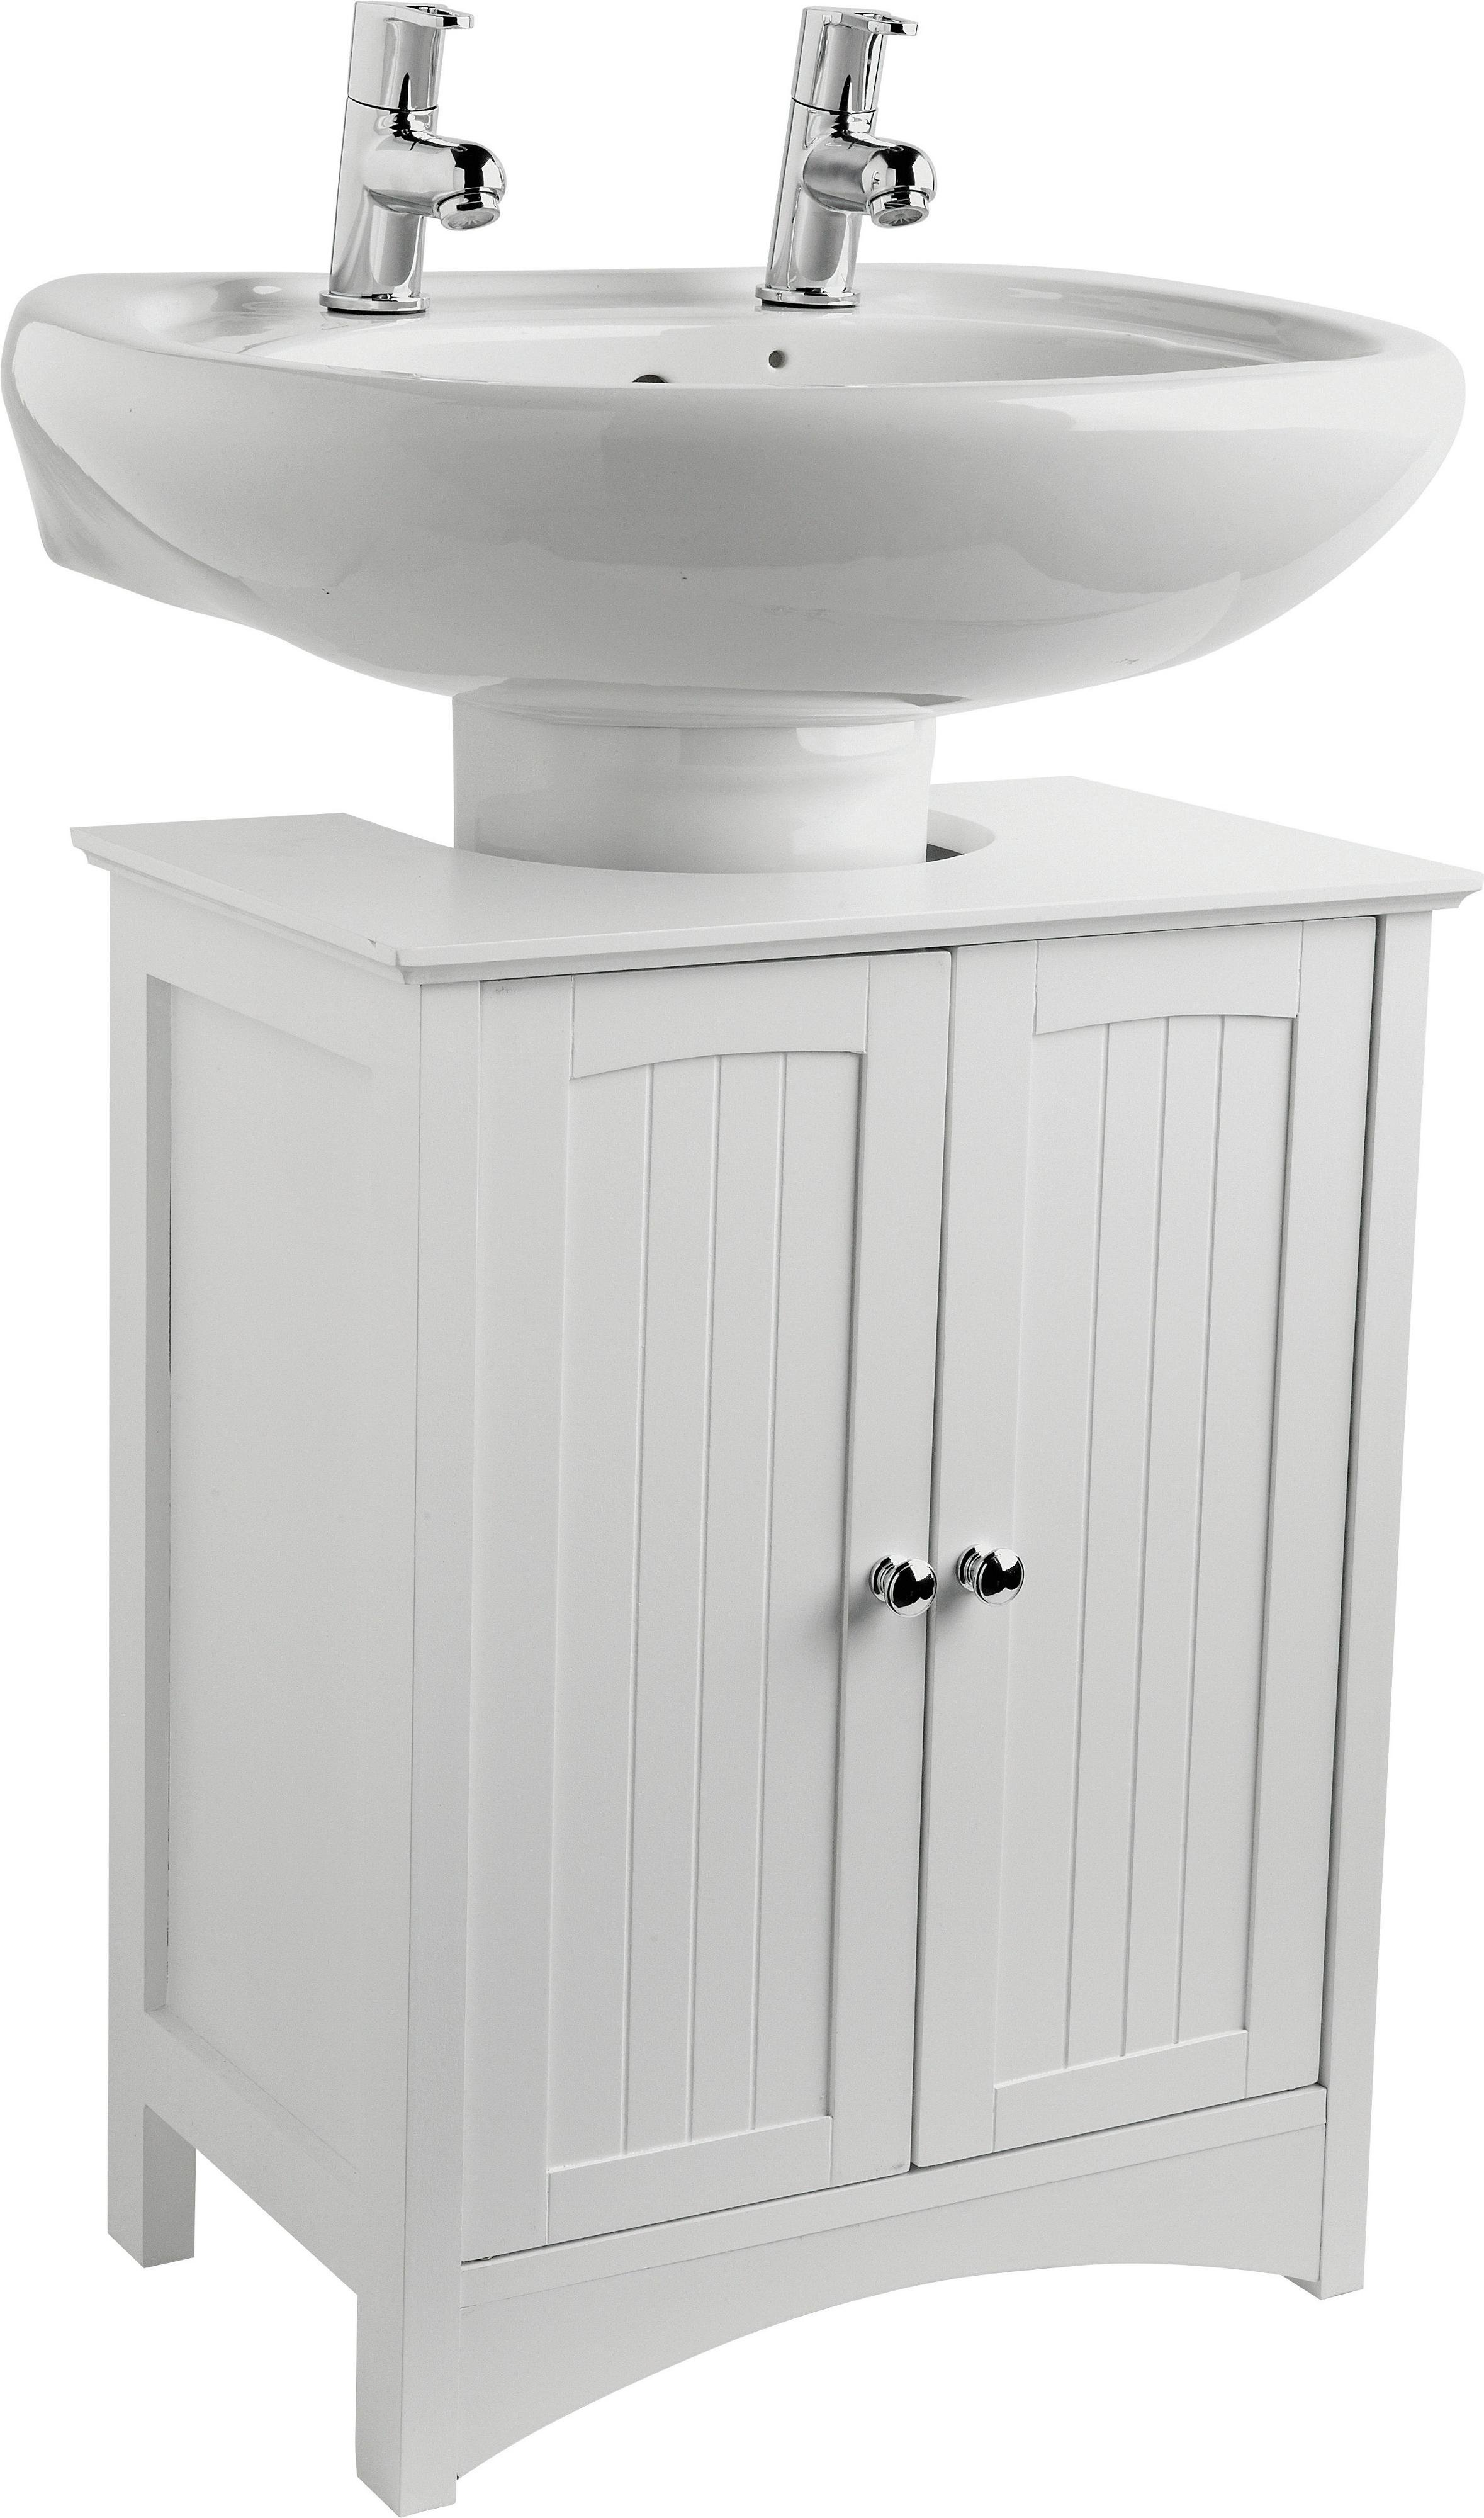 Bathroom shelves and storage units bathroom furniture home and